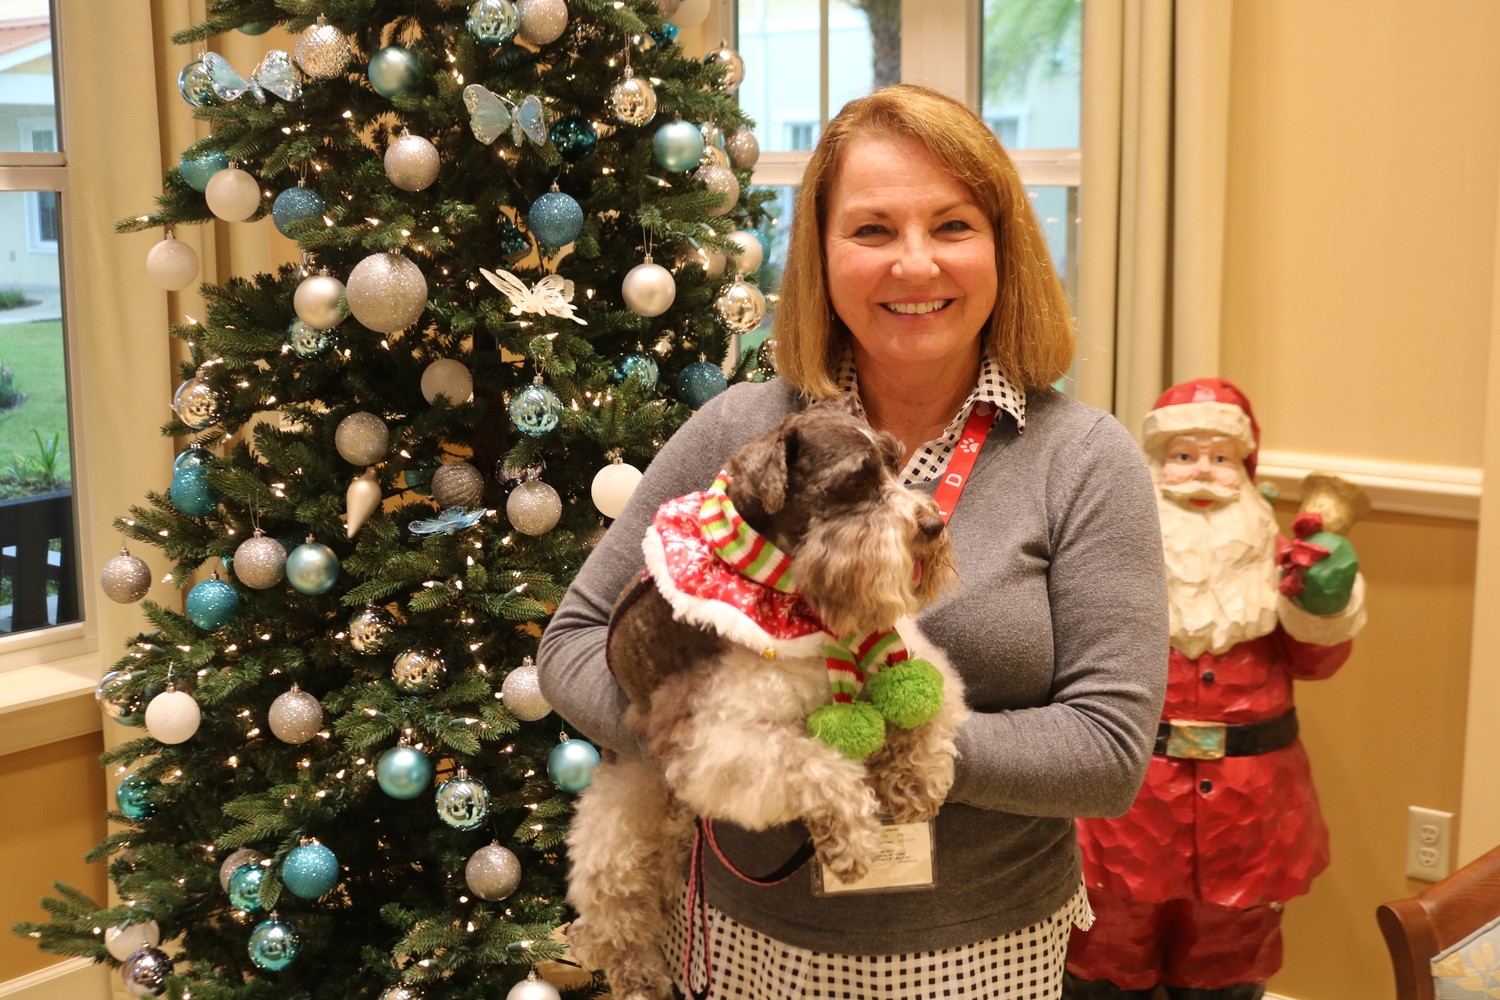 Margaret Gallardo, a volunteer pet therapy handler from Alliance of Therapy Dogs (ATD), poses for a photo with Coco.